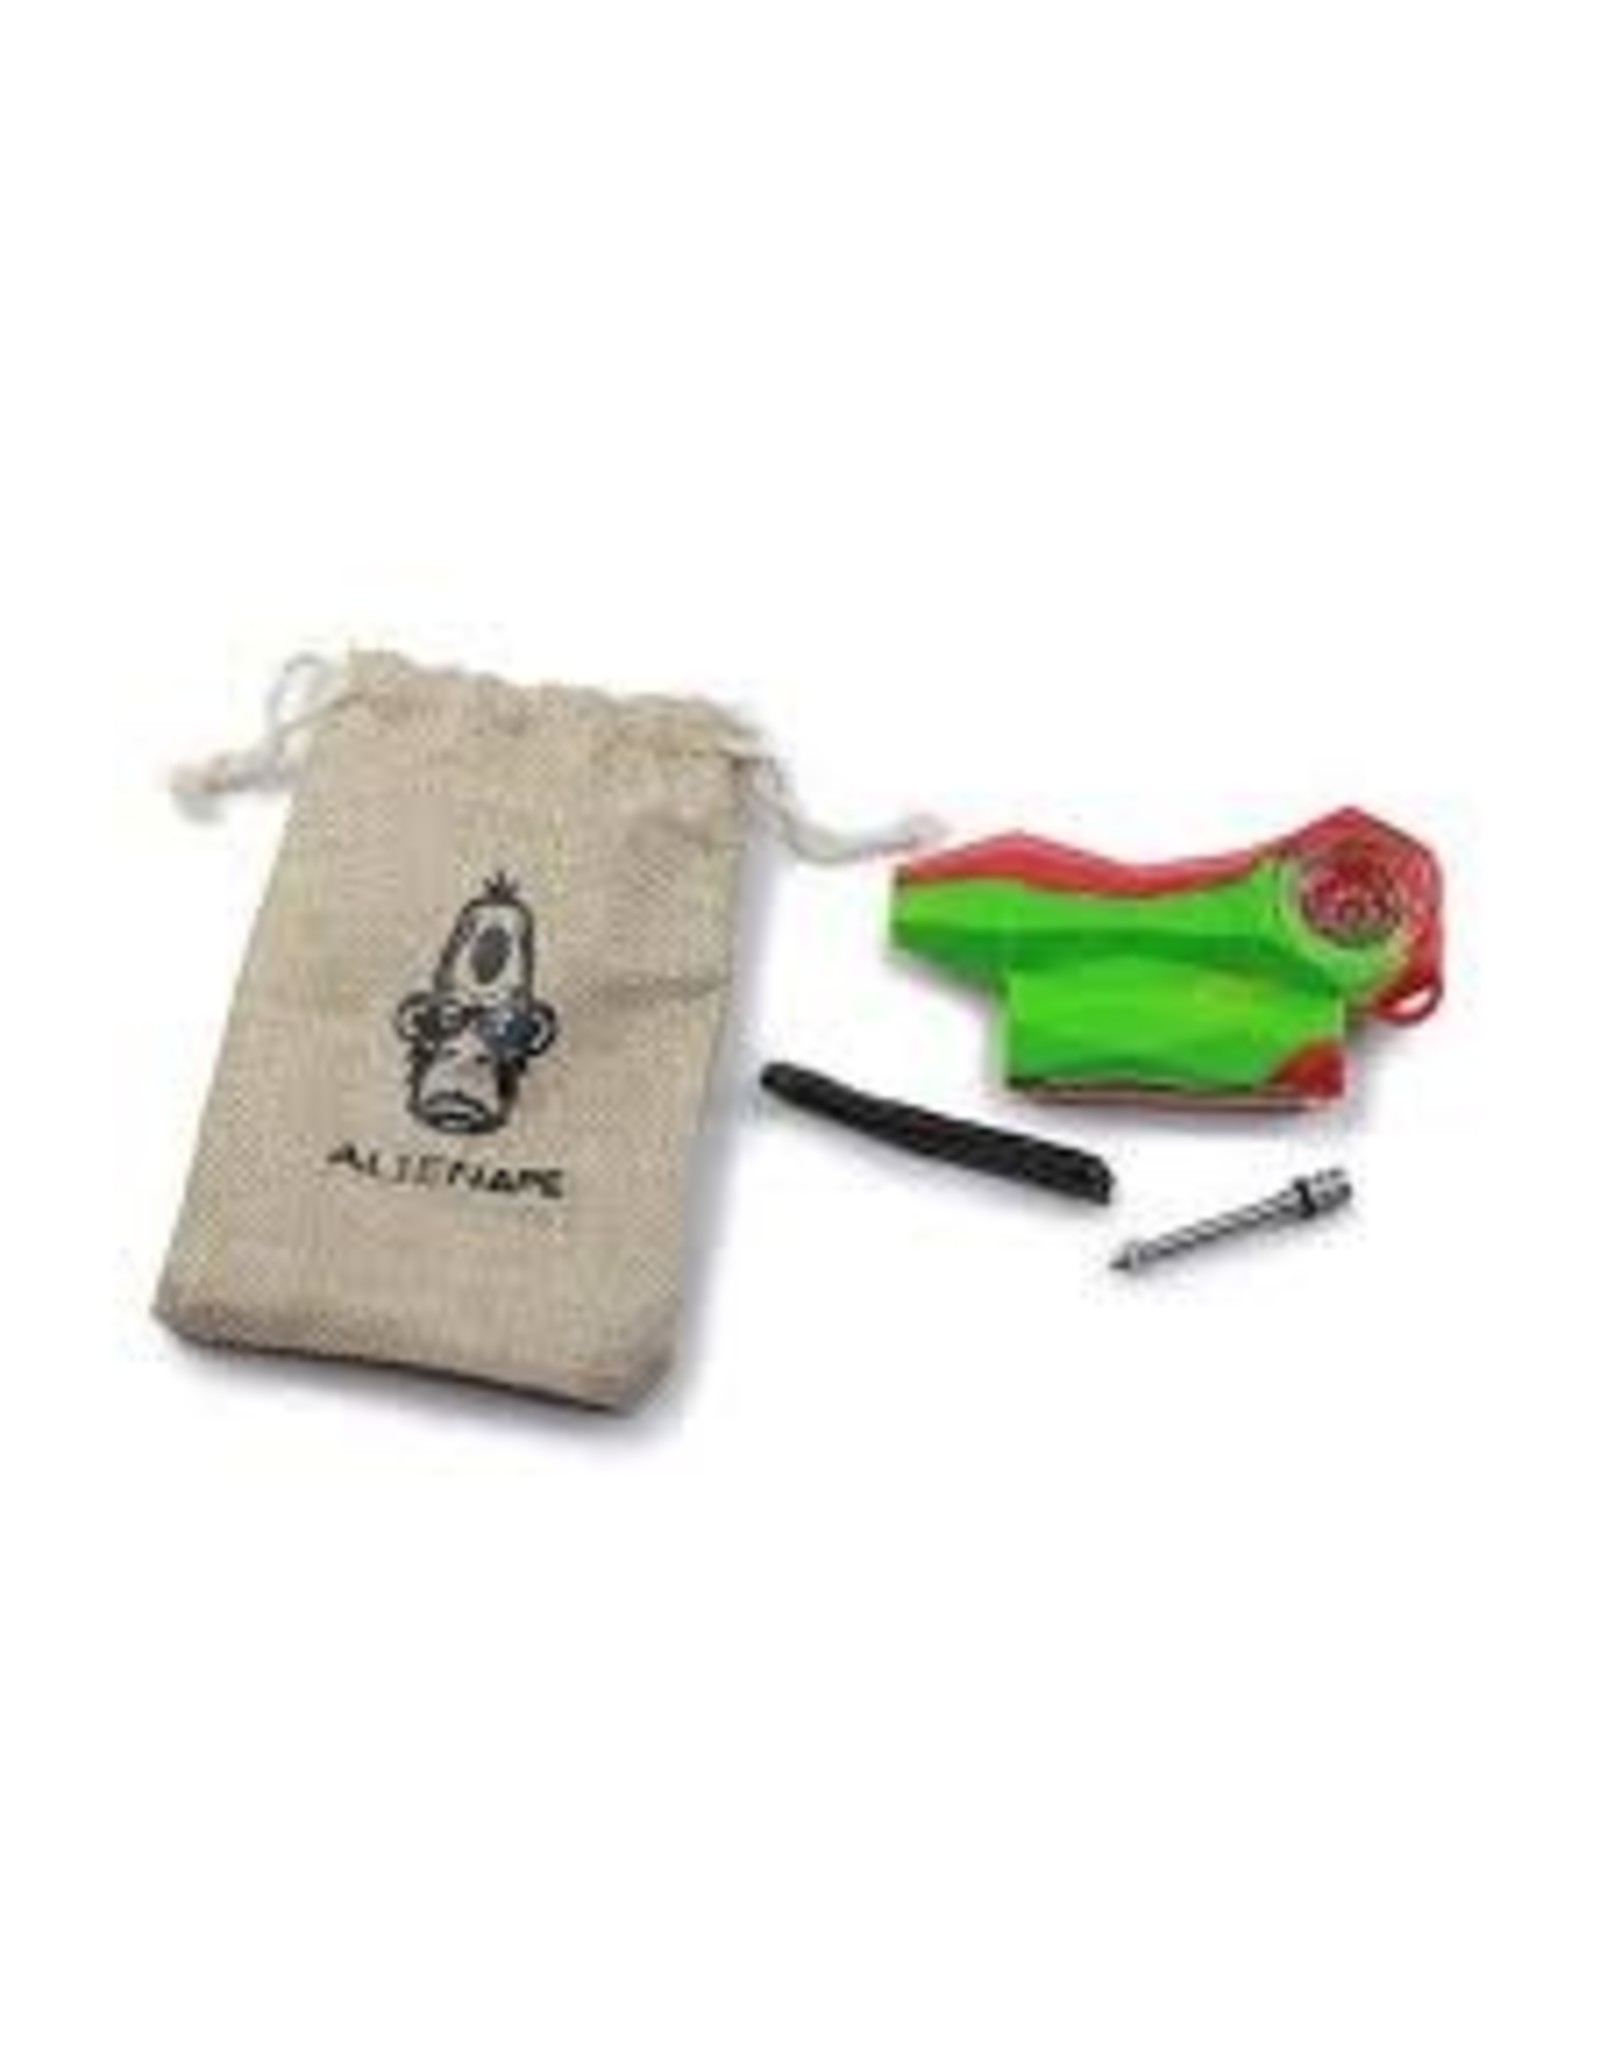 ALIEN APE- SPARKER PIPE WITH PERMANENT MATCH